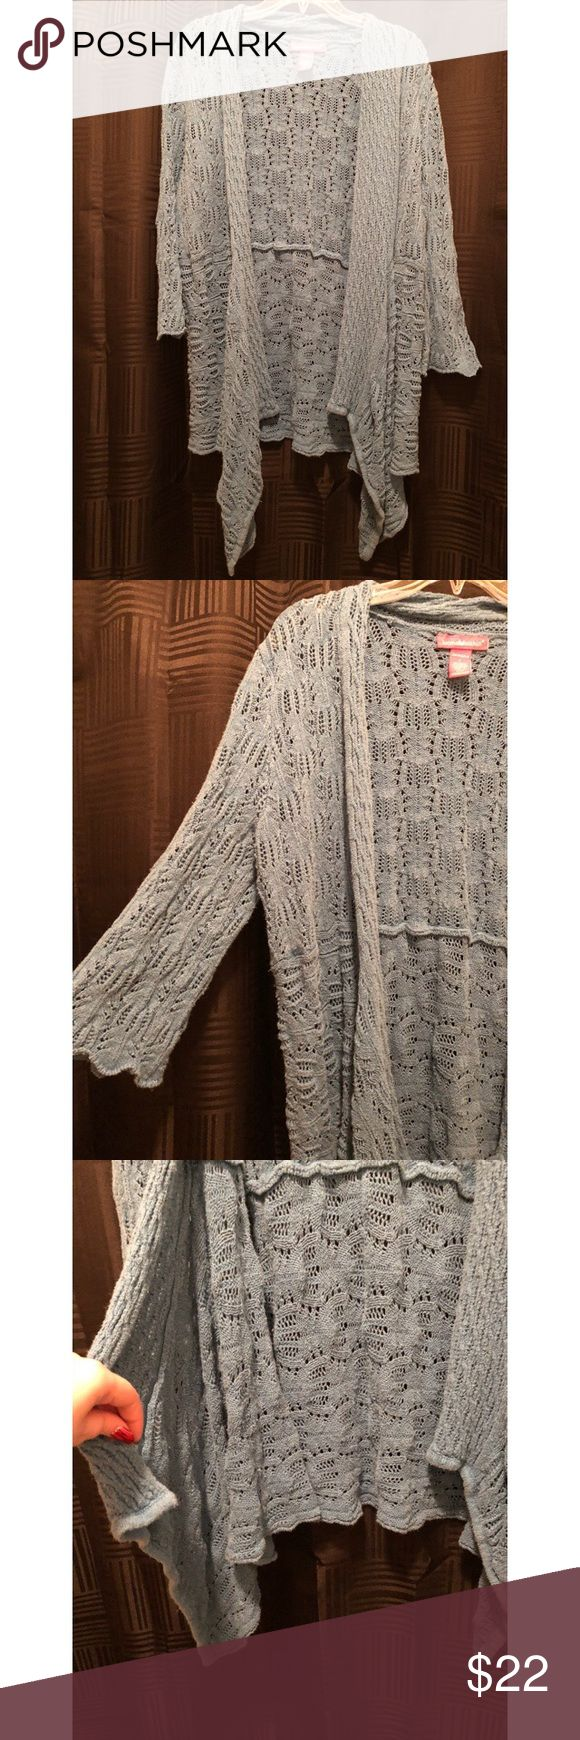 Woman Within • Blue Knit Cardigan Worn a few times- in excellent condition! Minor flaw is that the wash has faded the color a tad bit. STILL a gorgeous blue! 💙 Lovely Knit Cardigan! It has cascading sides & 3/4 length sleeves. I'm 5'2 and it comes to a little below my butt. Size L but can definitely fit a size bigger! 🤓 55 Ramie, 45 Cotton. I hurried and tried to capture the color (last photo best represents) before the light caught it! Woman Within Sweaters Cardigans